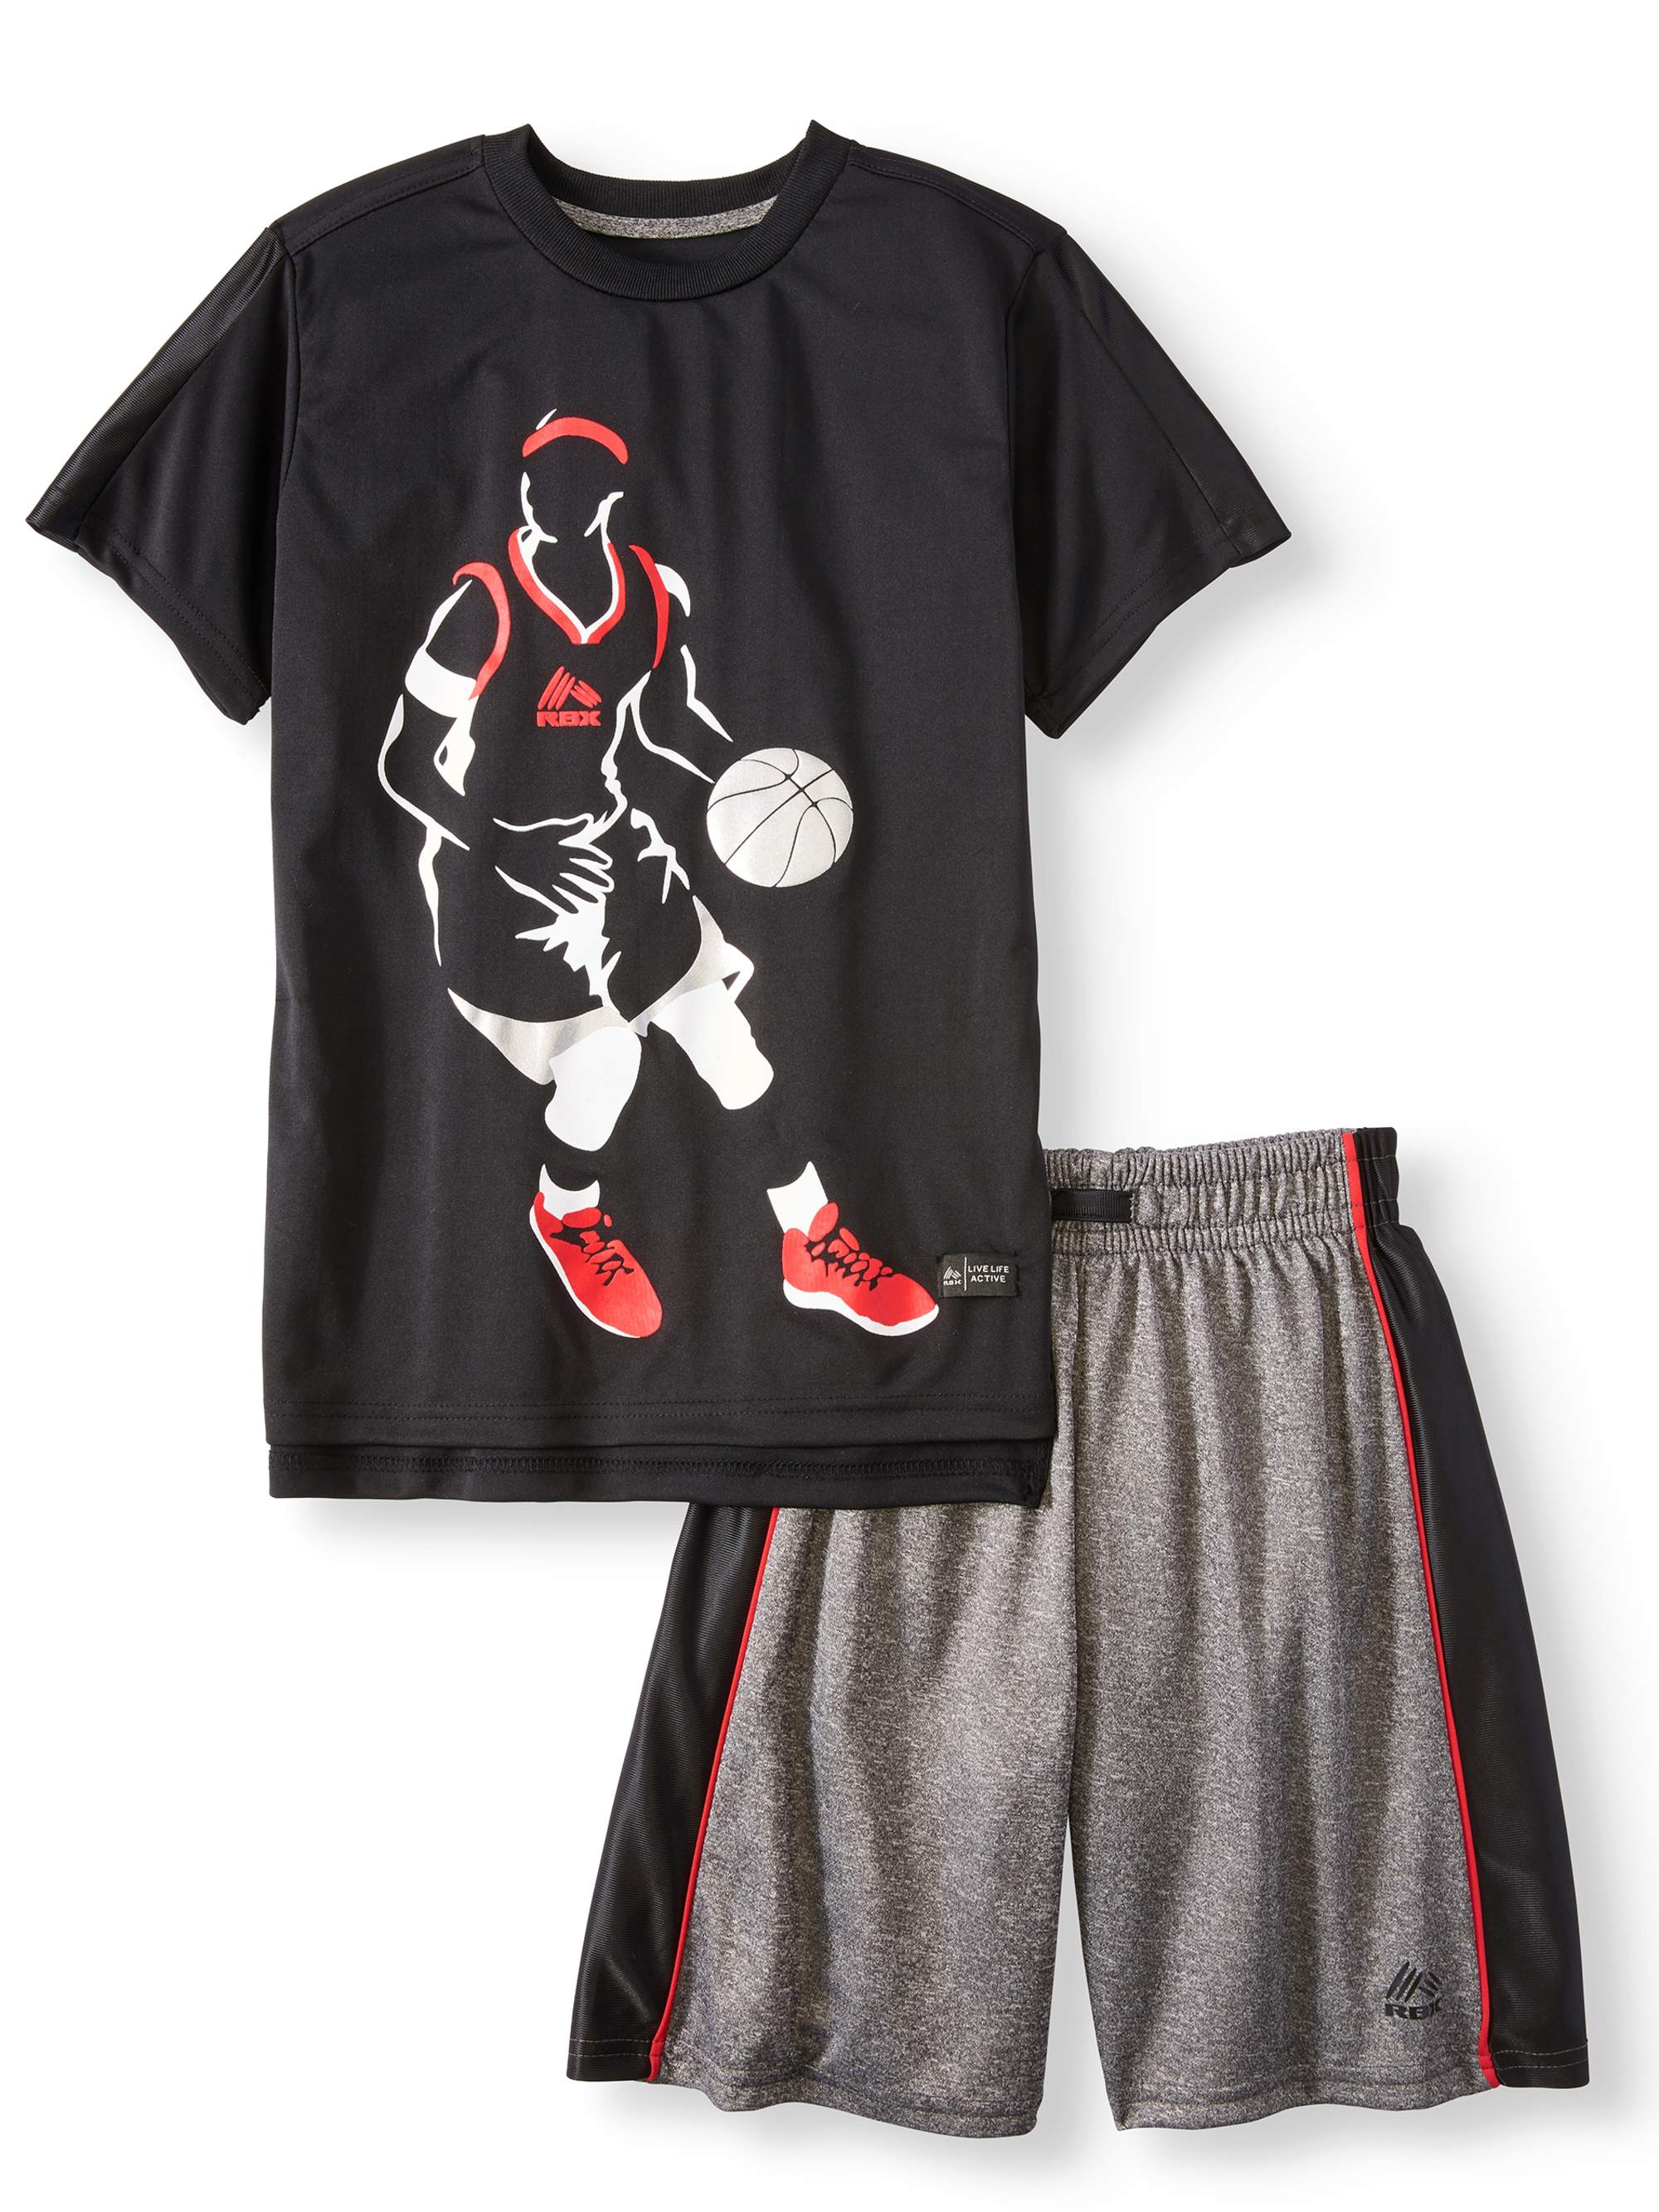 Boys' Graphic Tee and Performance Shorts Set